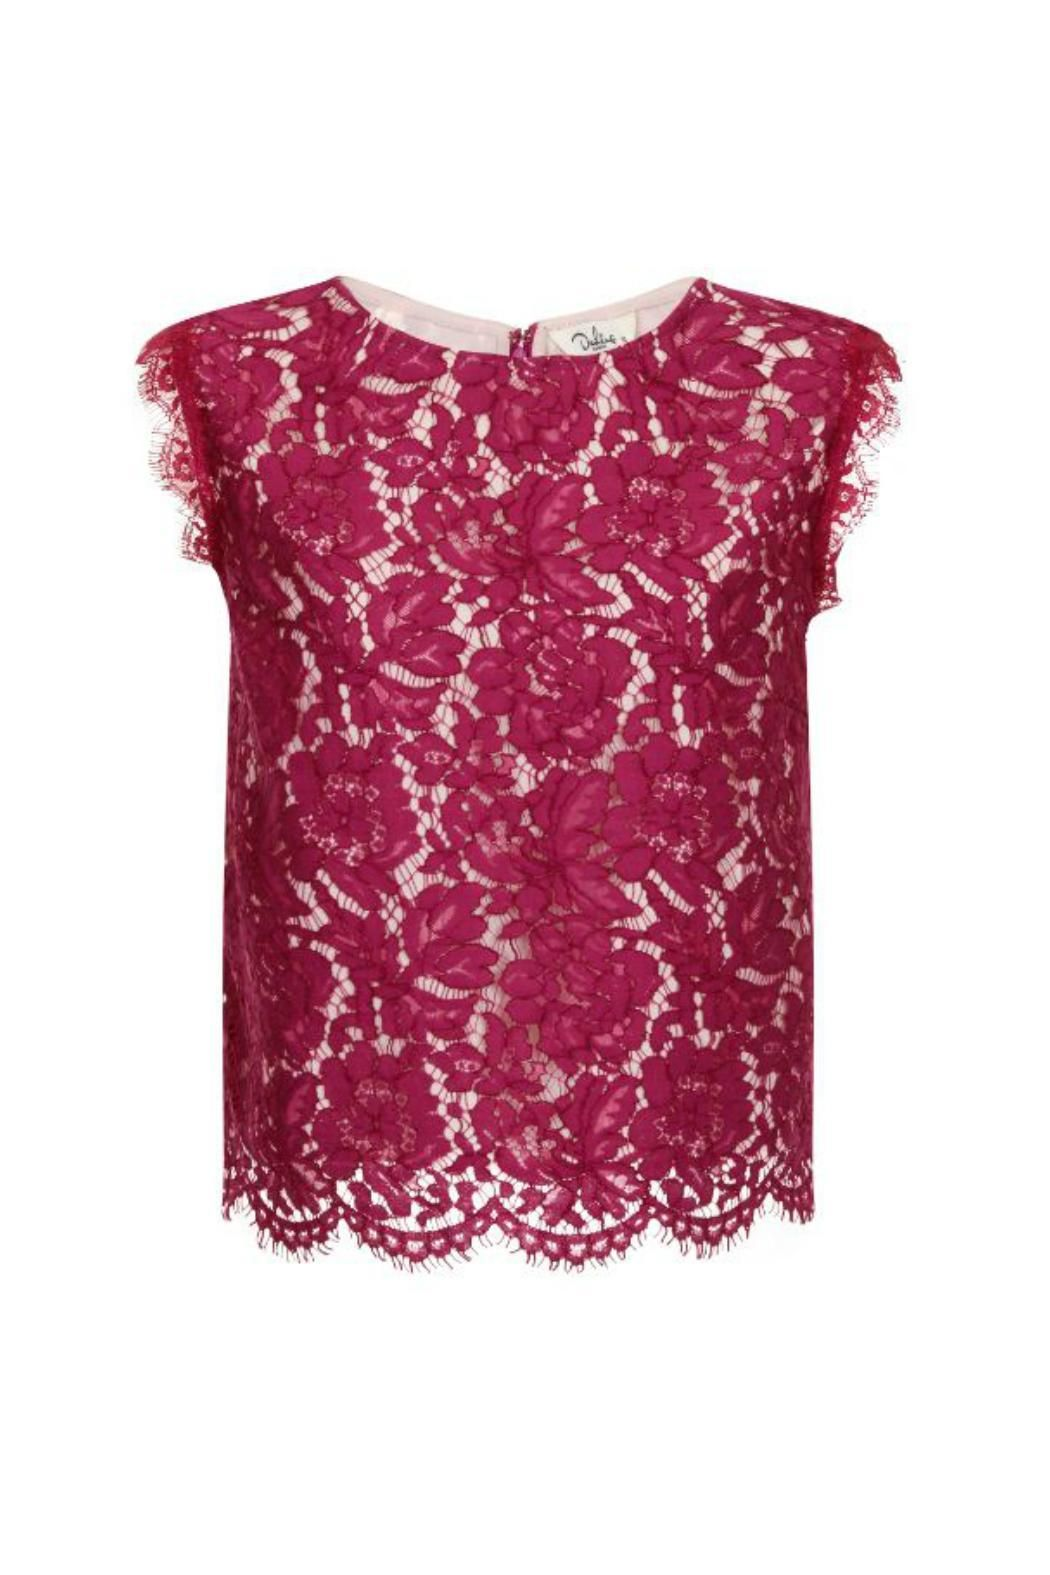 Magenta Lace top.Perfect with black skirt or pants! Shell: 36% cotton 34% nylon 30% viscose; Contrast 100% polyester; Lining: 100% polyester.  Lace Top by Darling. Clothing - Tops Canada